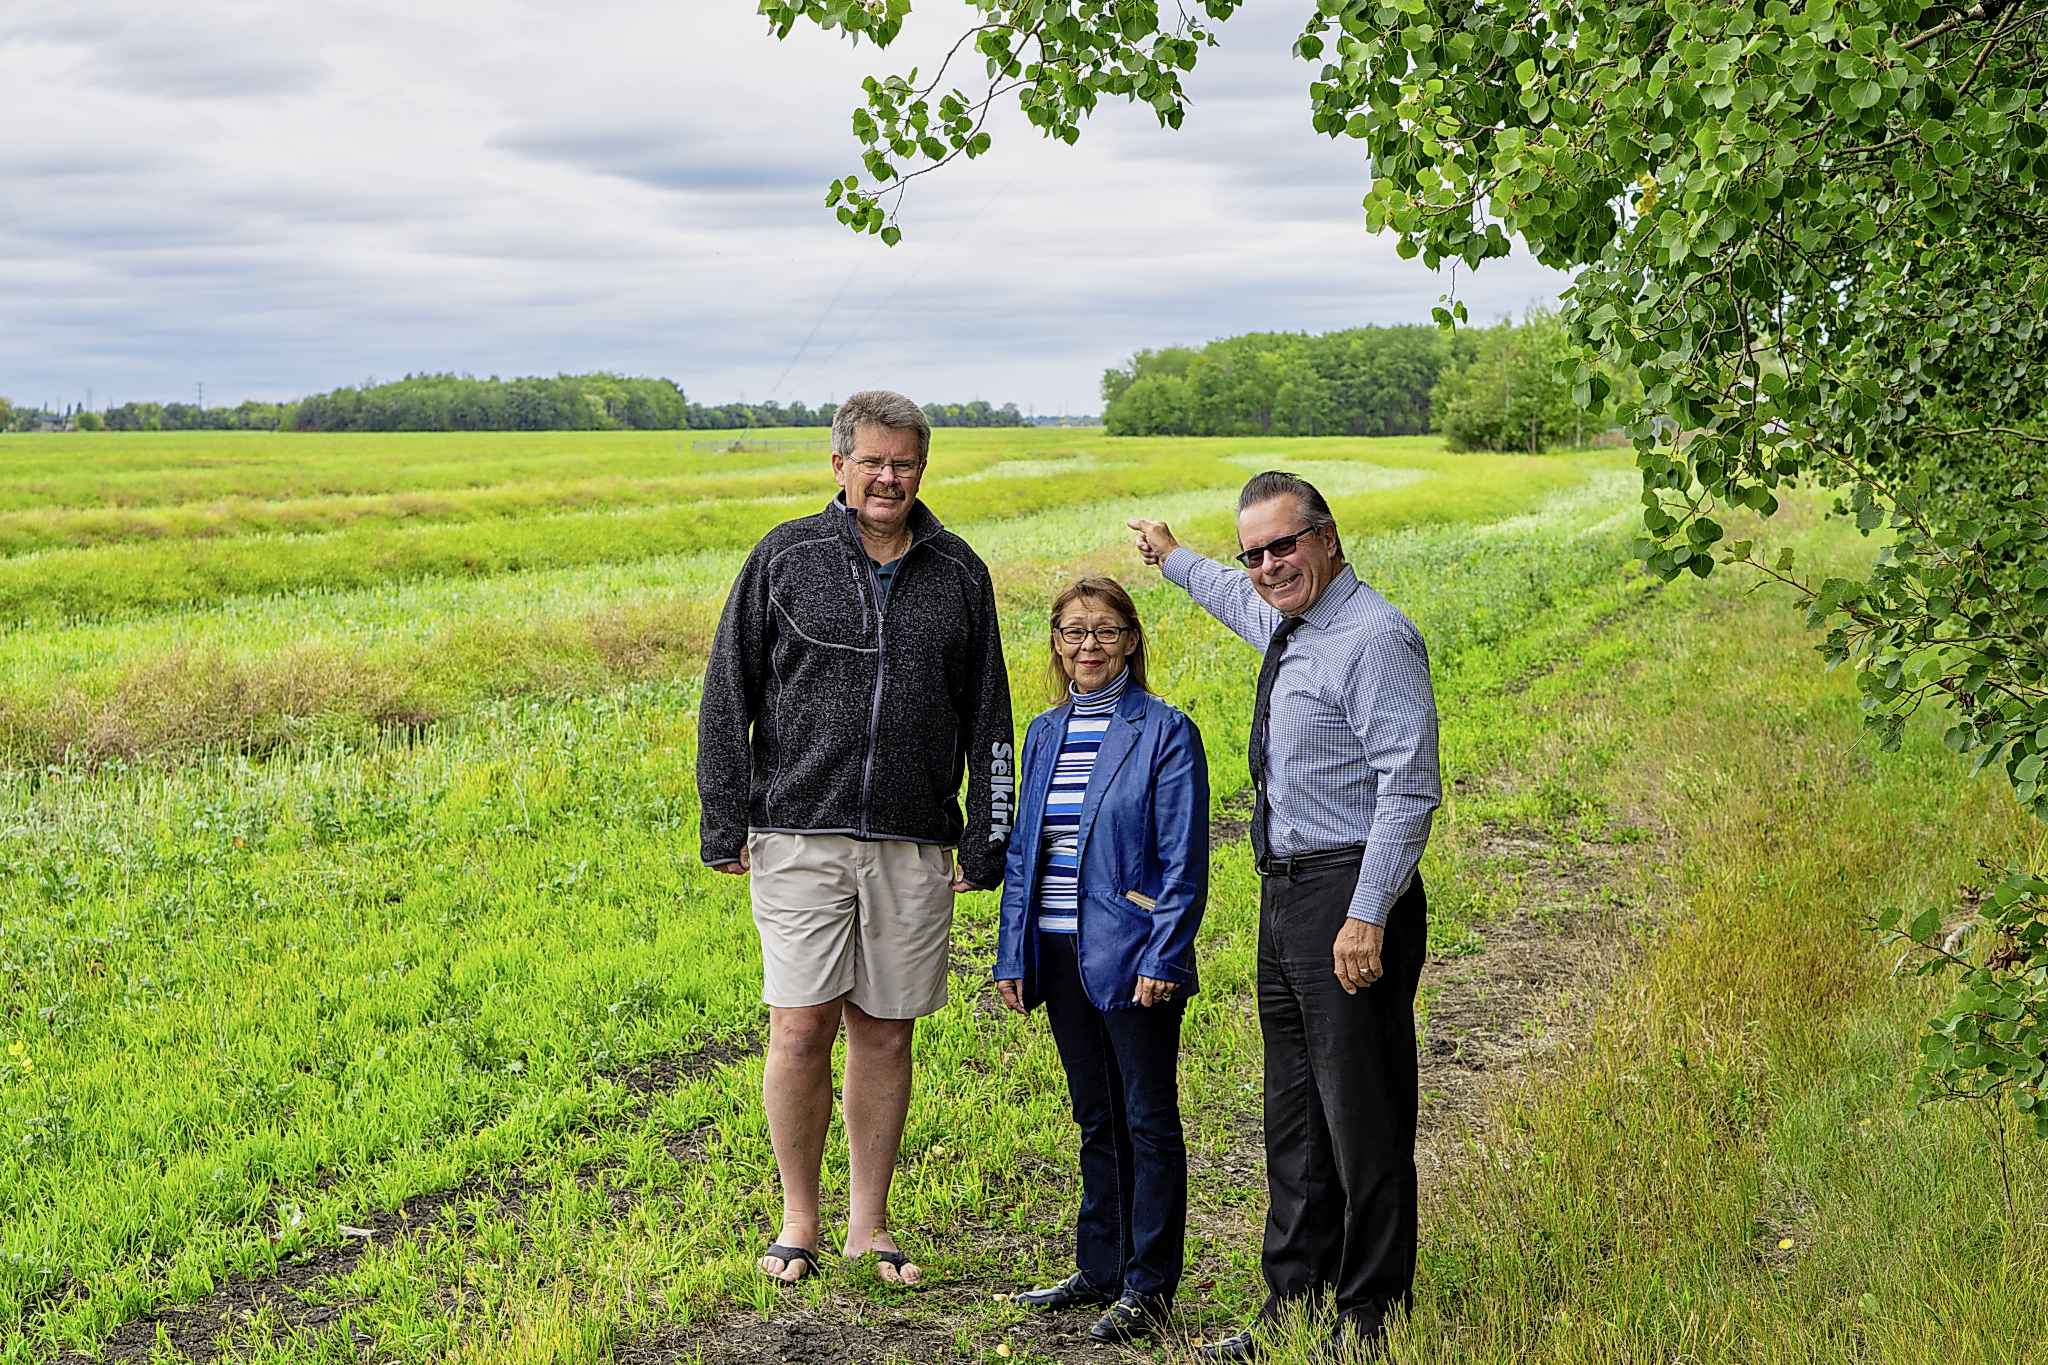 Selkirk city councillor Kelly Cook, (left to right) Deputy Mayor Darlene Swiderski, and Mayor Larry Johannson in front of the land on the west end of the city which will be developed over the next three decades.